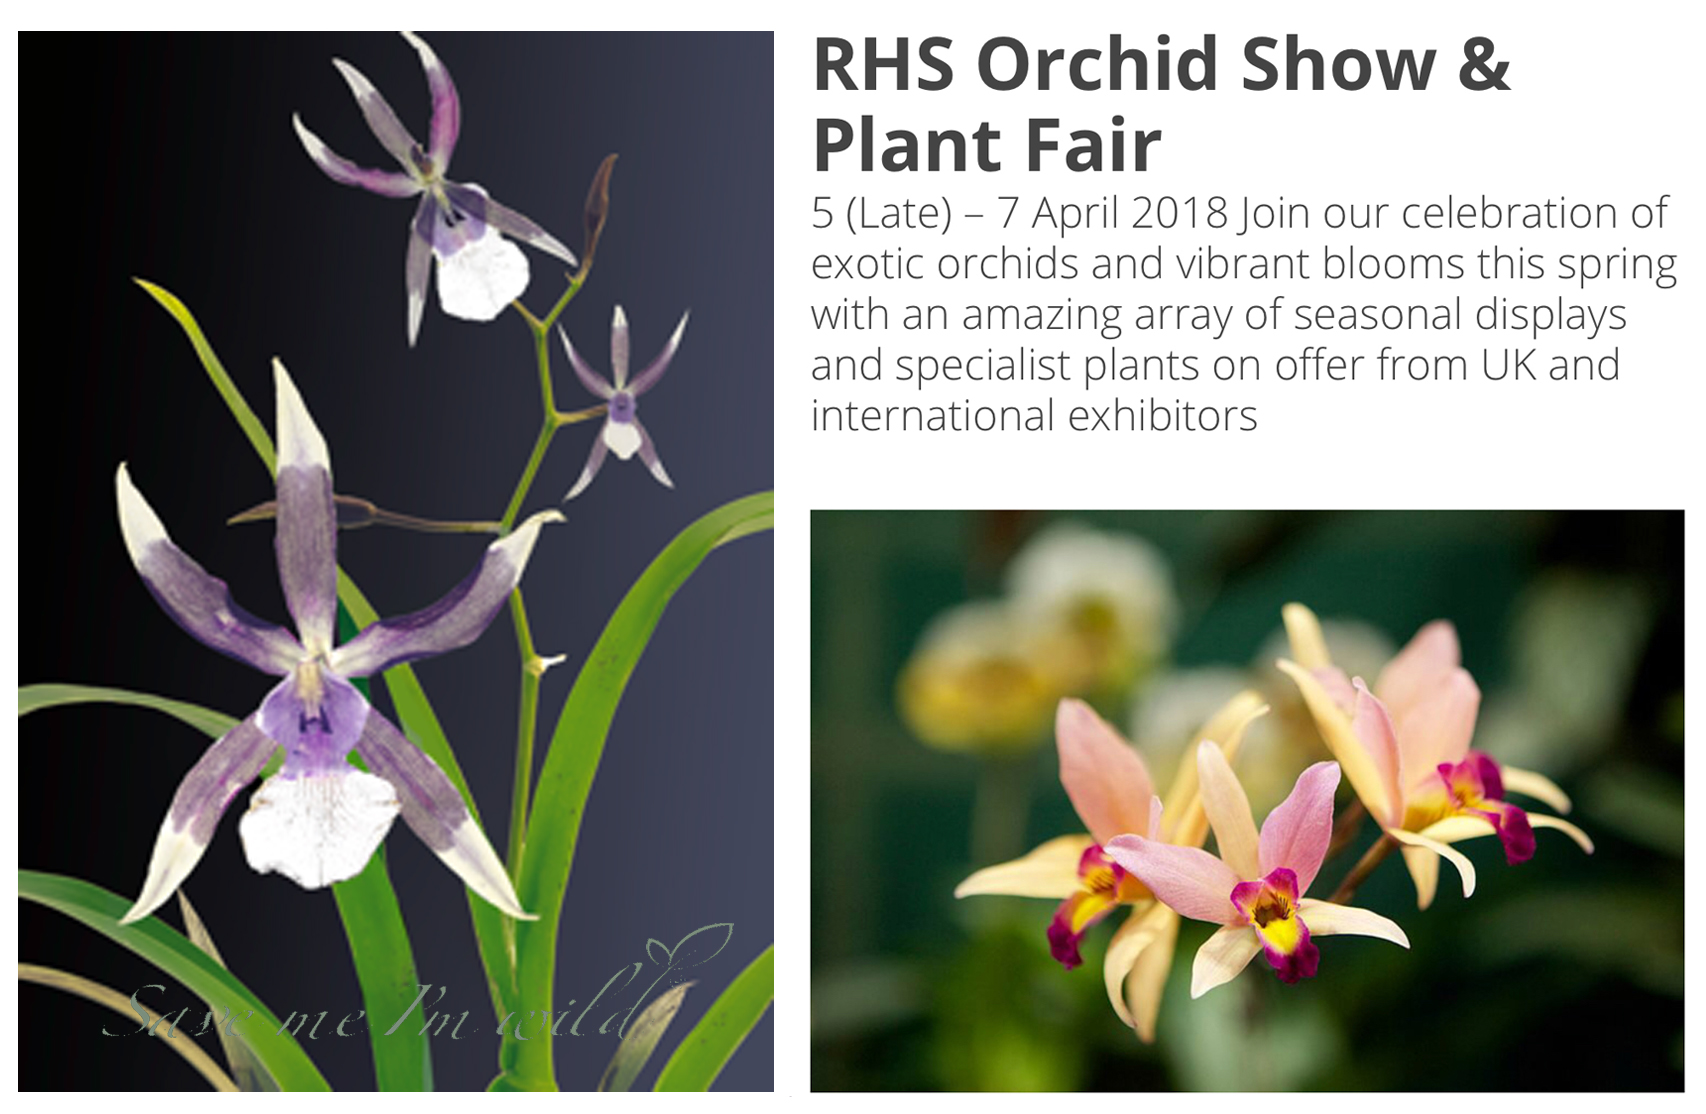 RHS Orchid Show